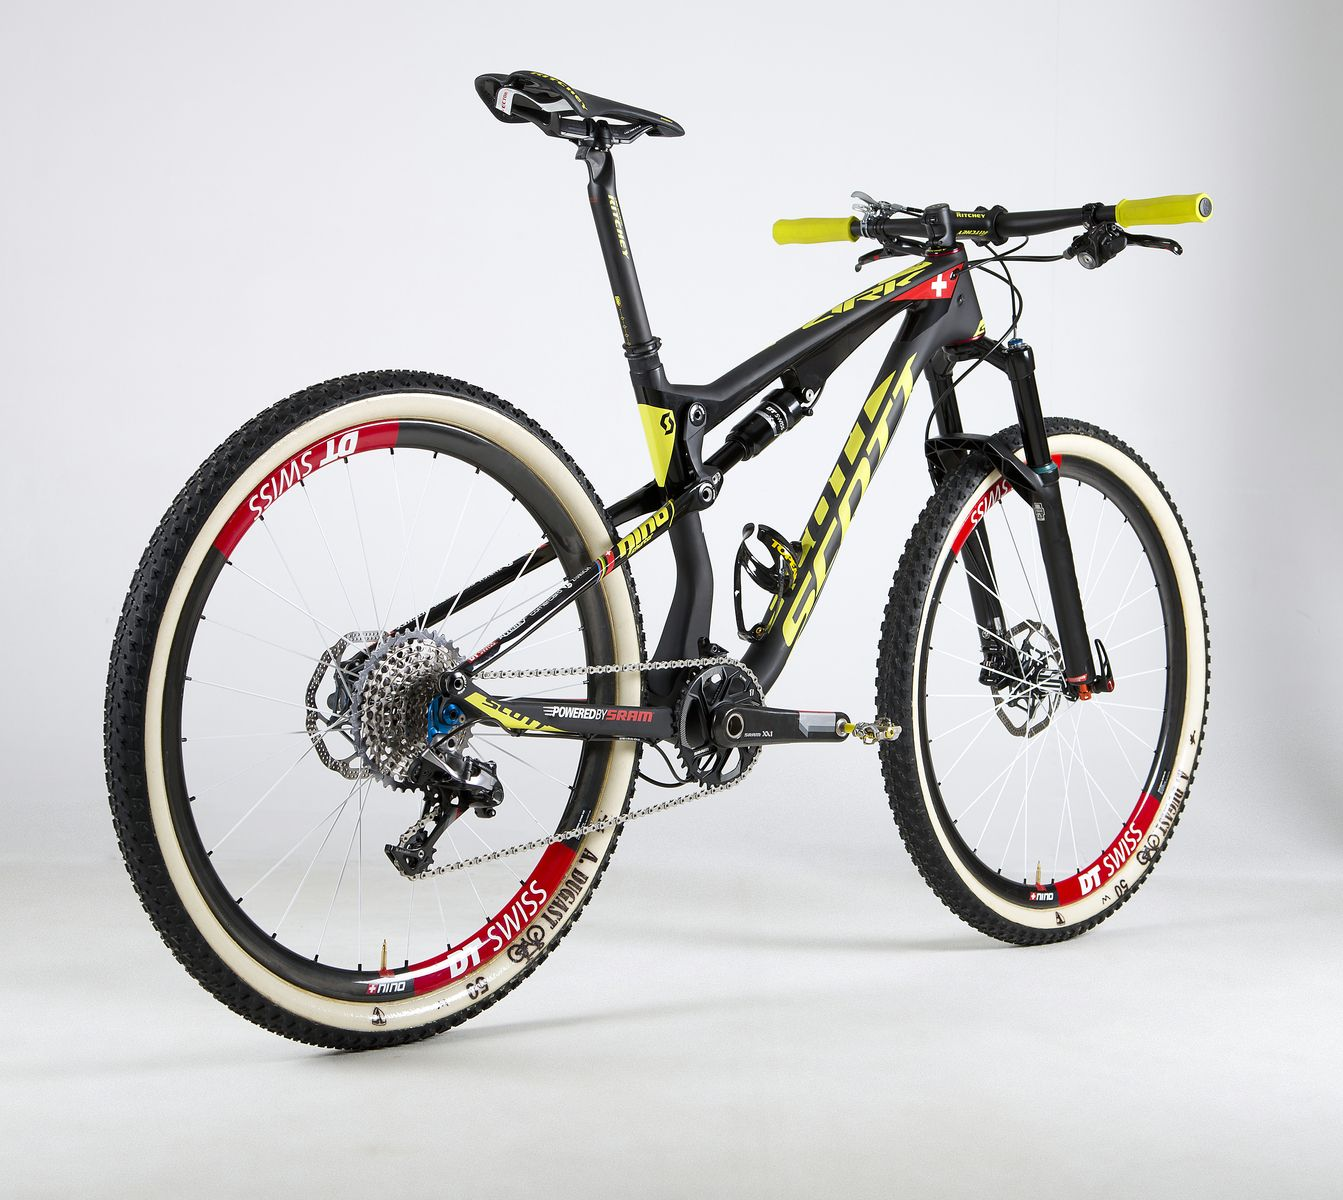 108e70889d0 Scott Odlo - MTB Racing Spark 700 RC Nino Product 2015 | MTB ...